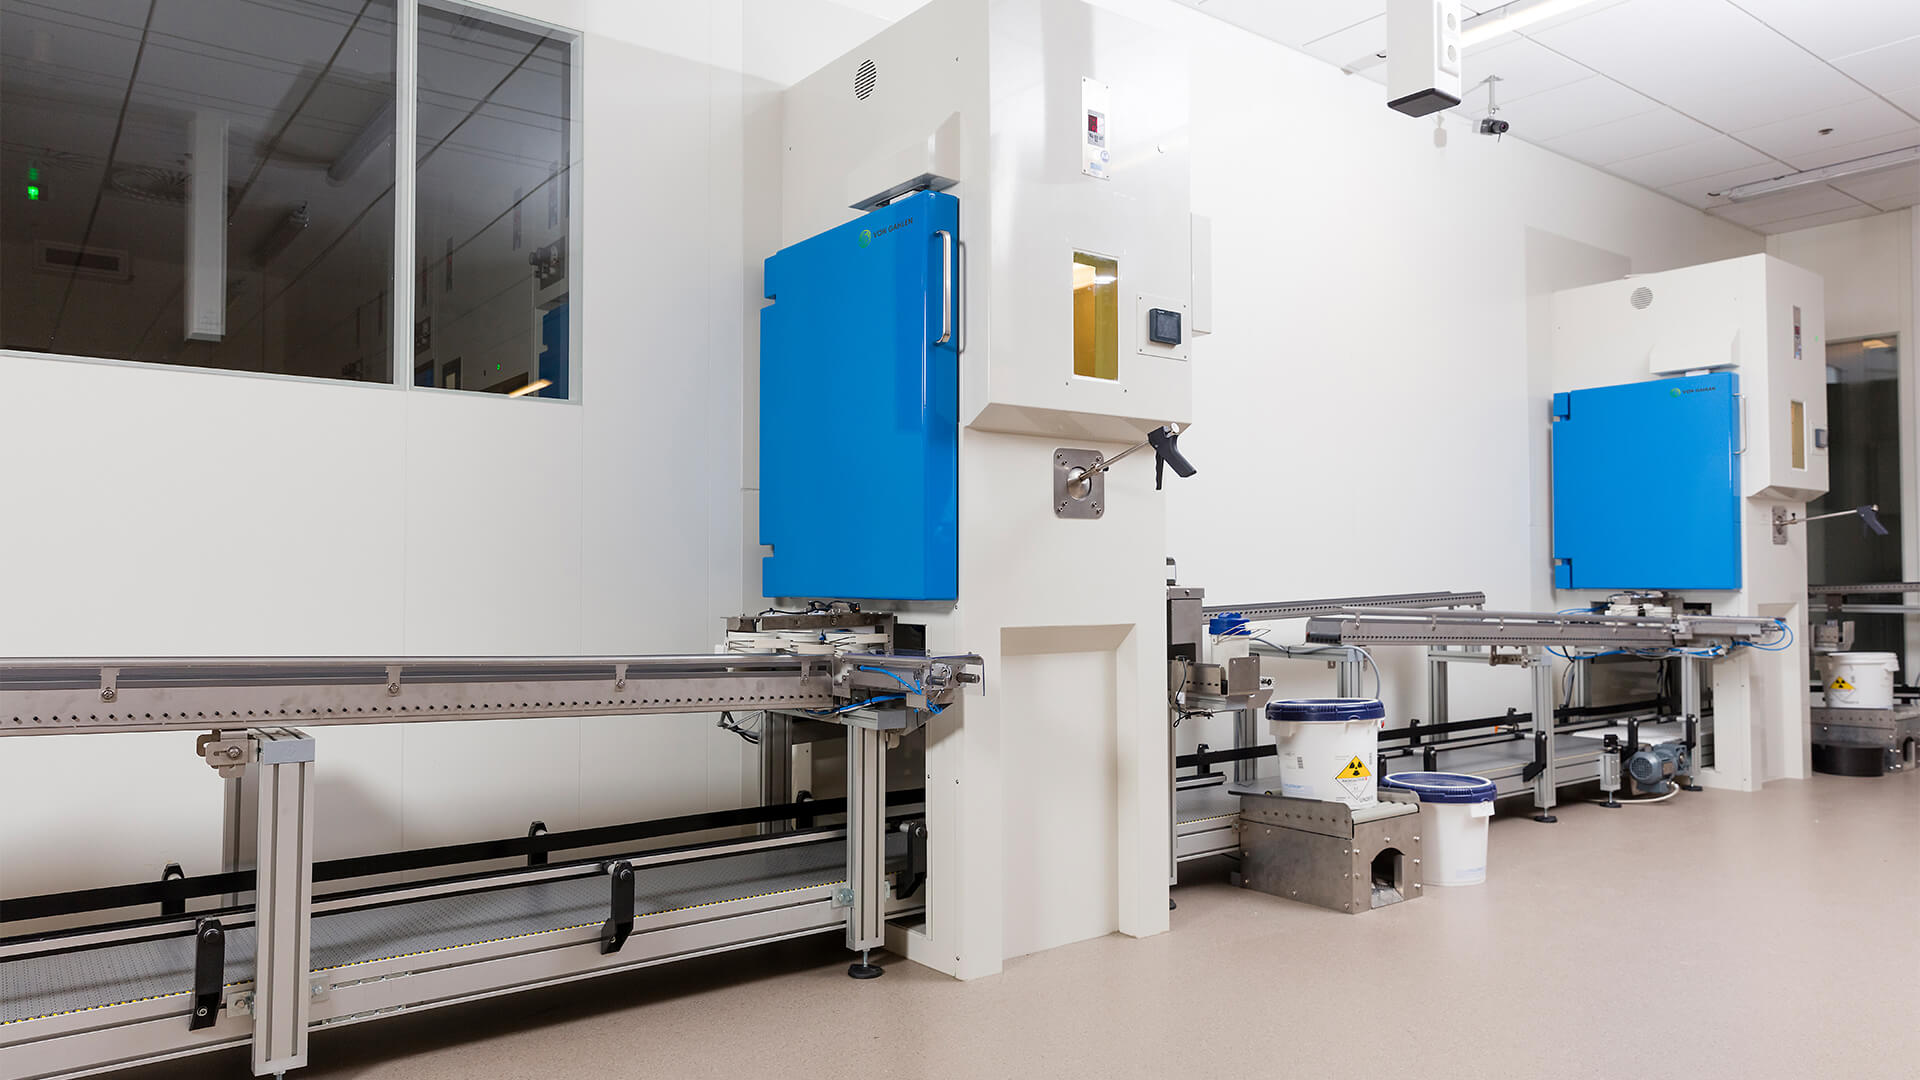 At the back of the hot cells the output, packaging and further transportation of PET radiopharmaceuticals and Zr-89 (Zirconium-89) takes place.